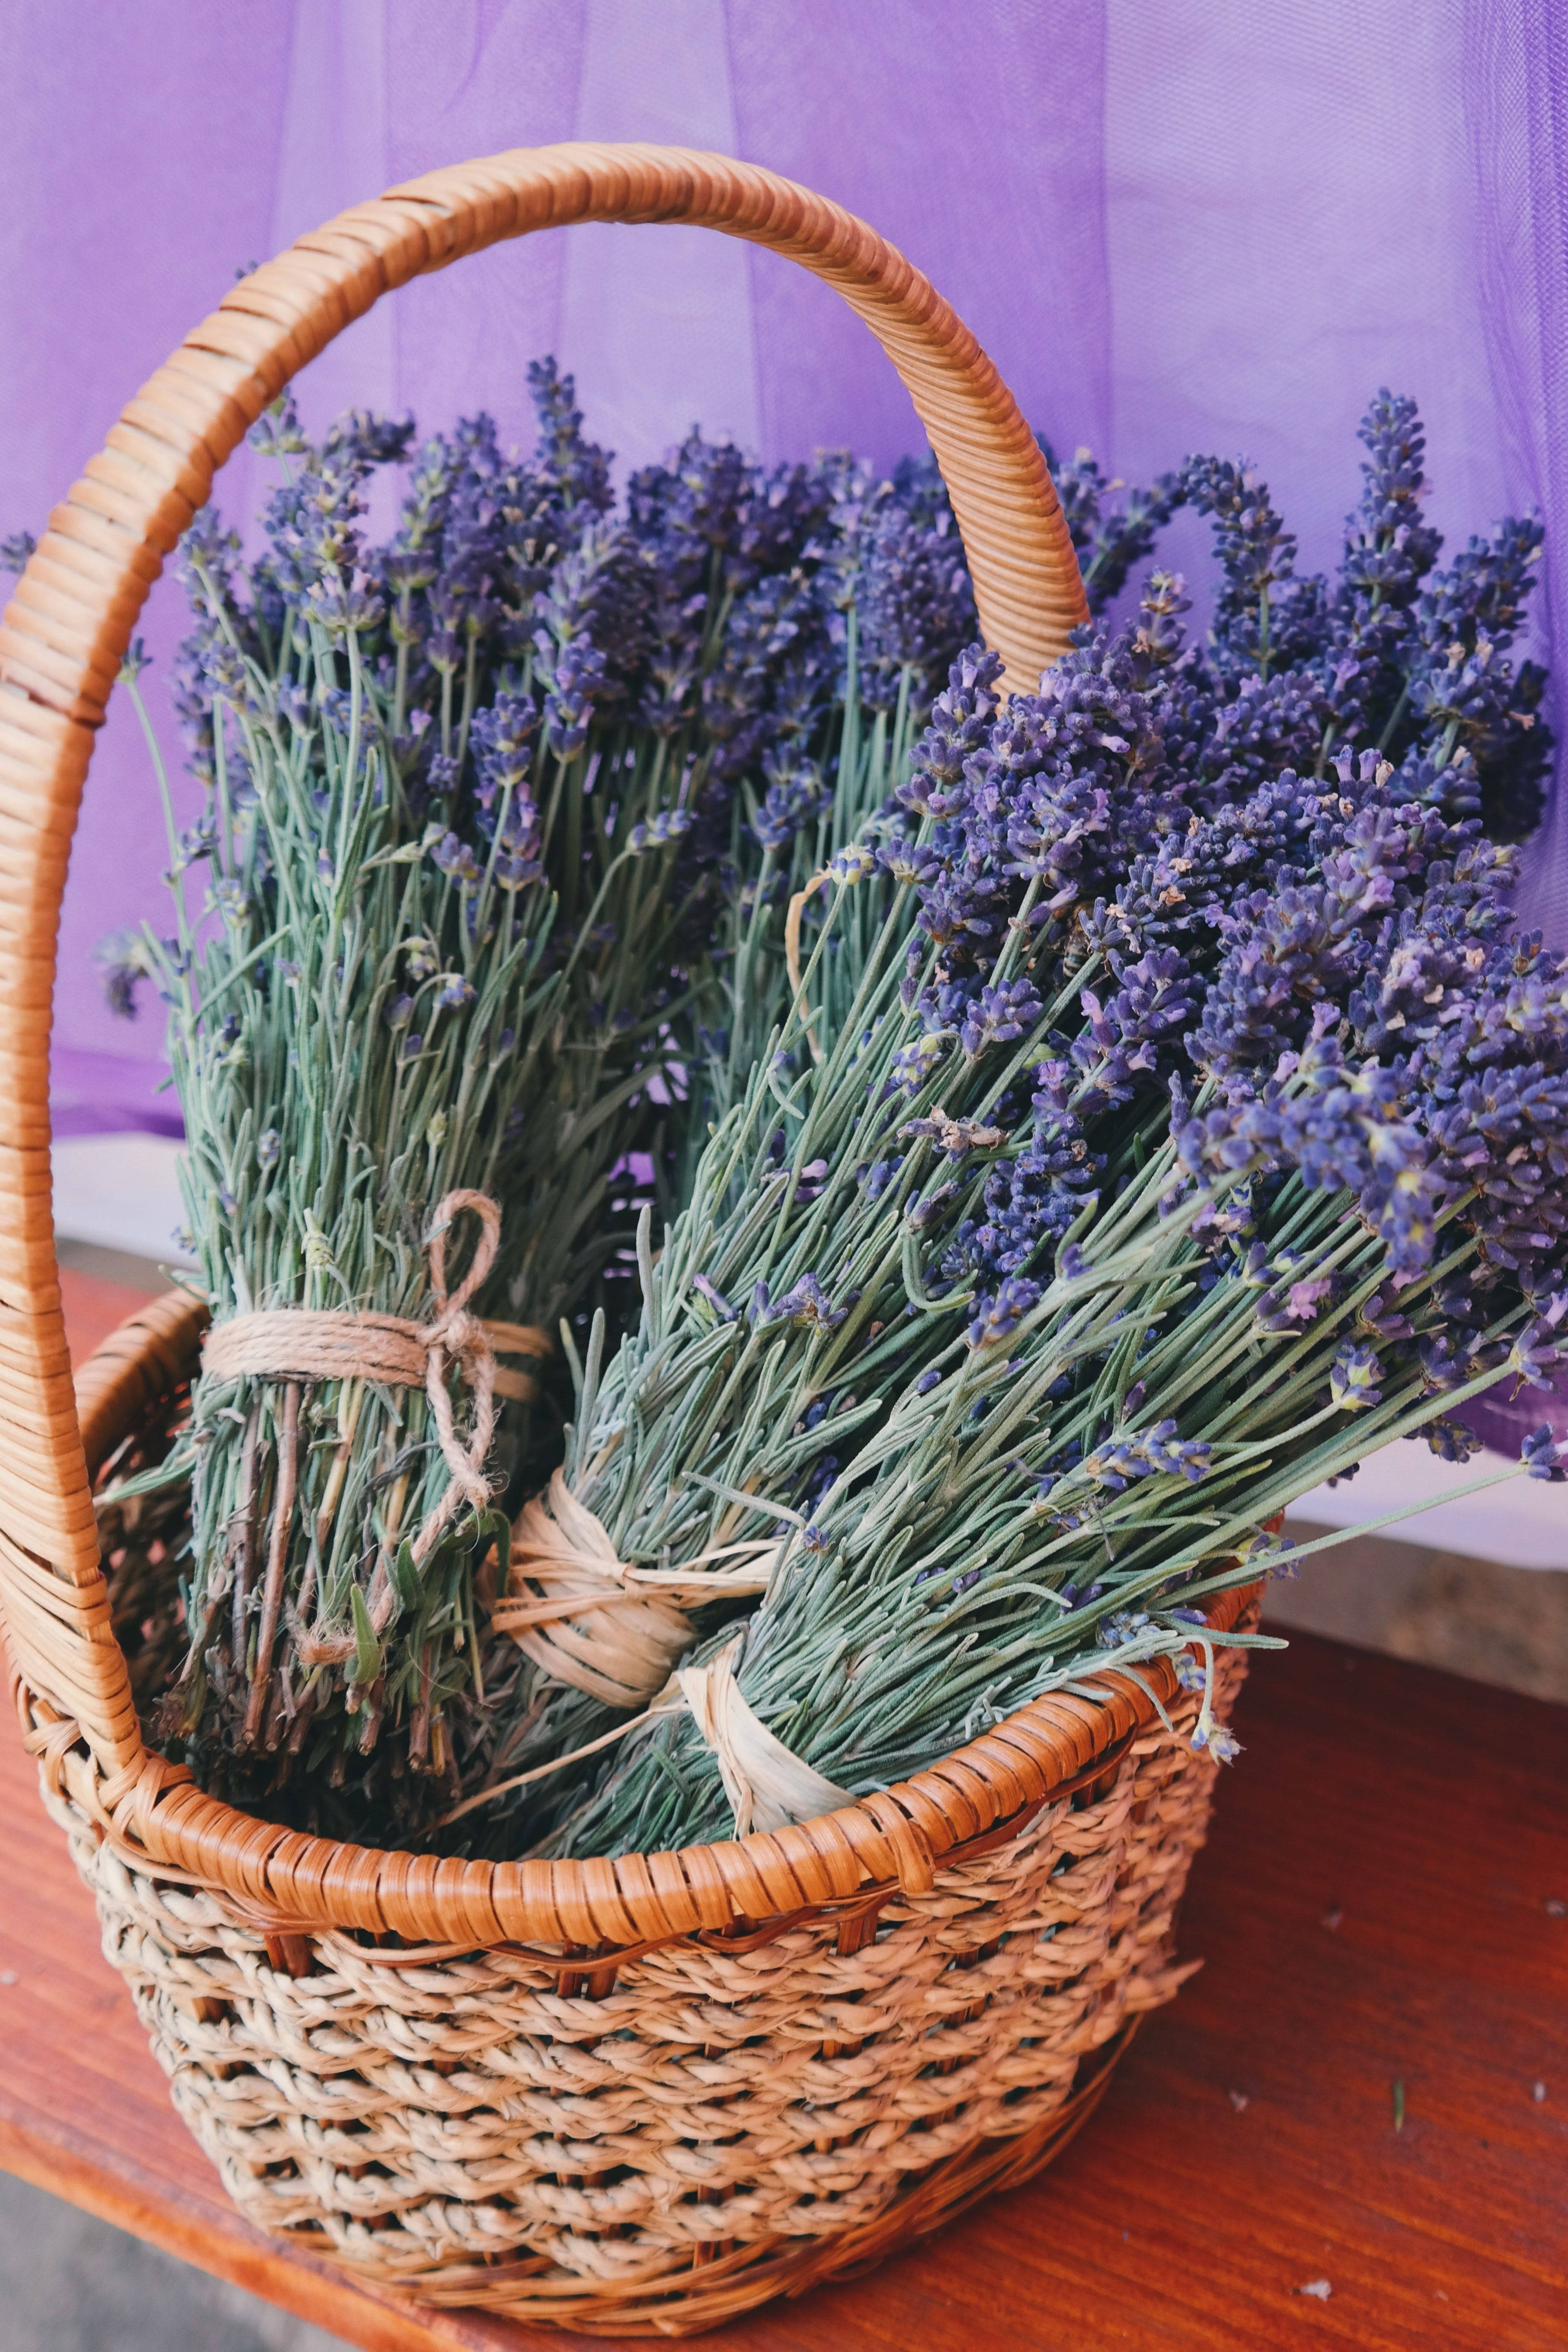 Growing And Caring For Lavender Plants Lavender Plant Care Lavender Flowers Lavender Plant